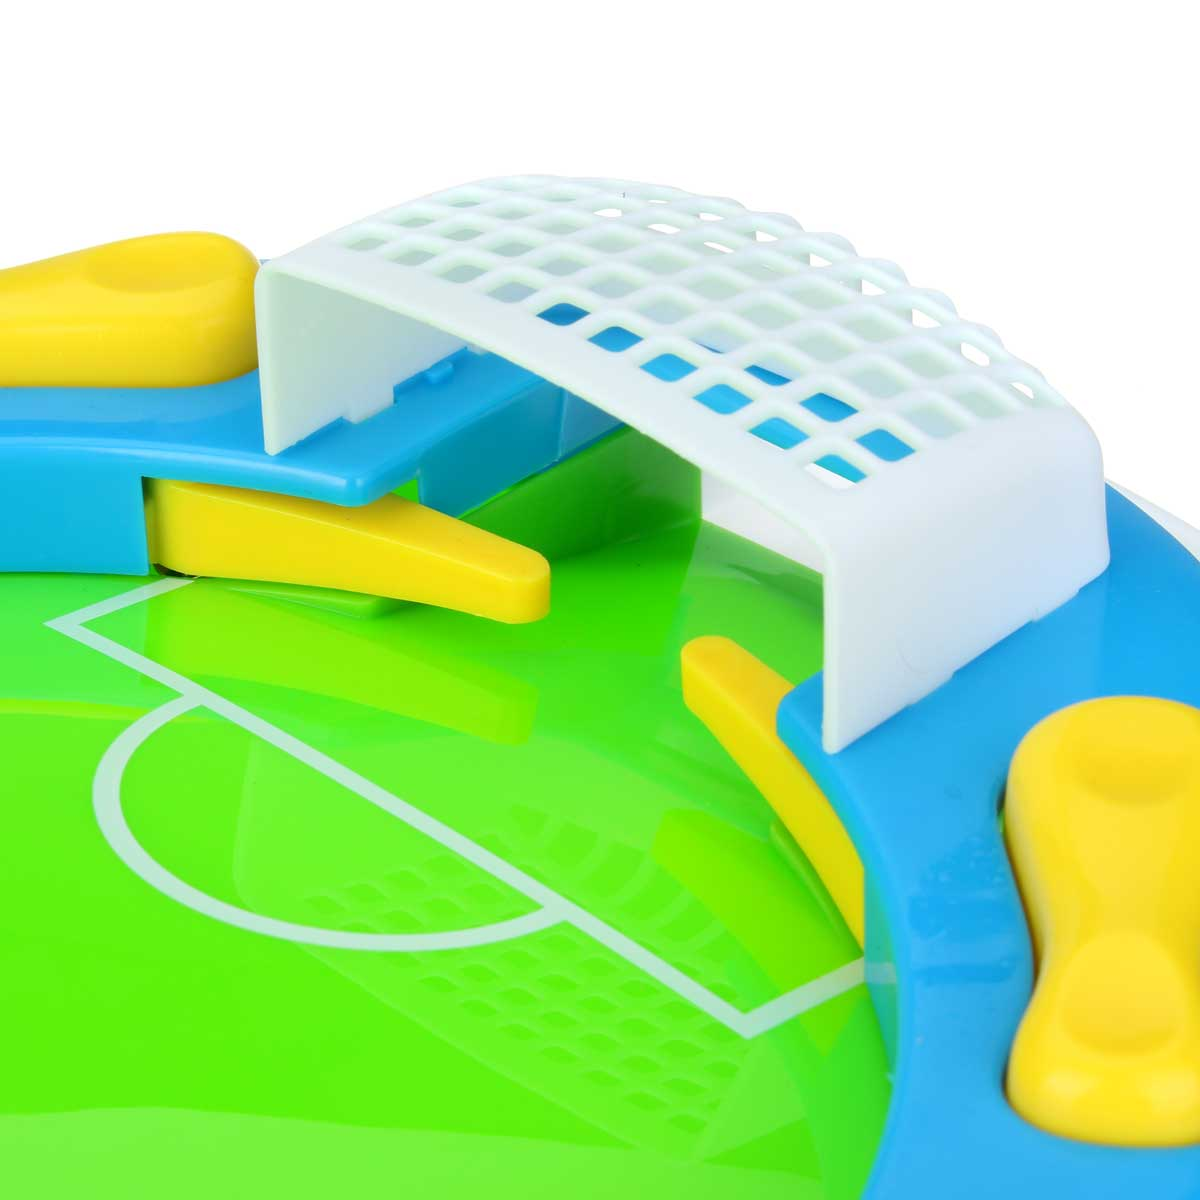 Table Soccer Game Football Games Tables Table Top Shoot Activate